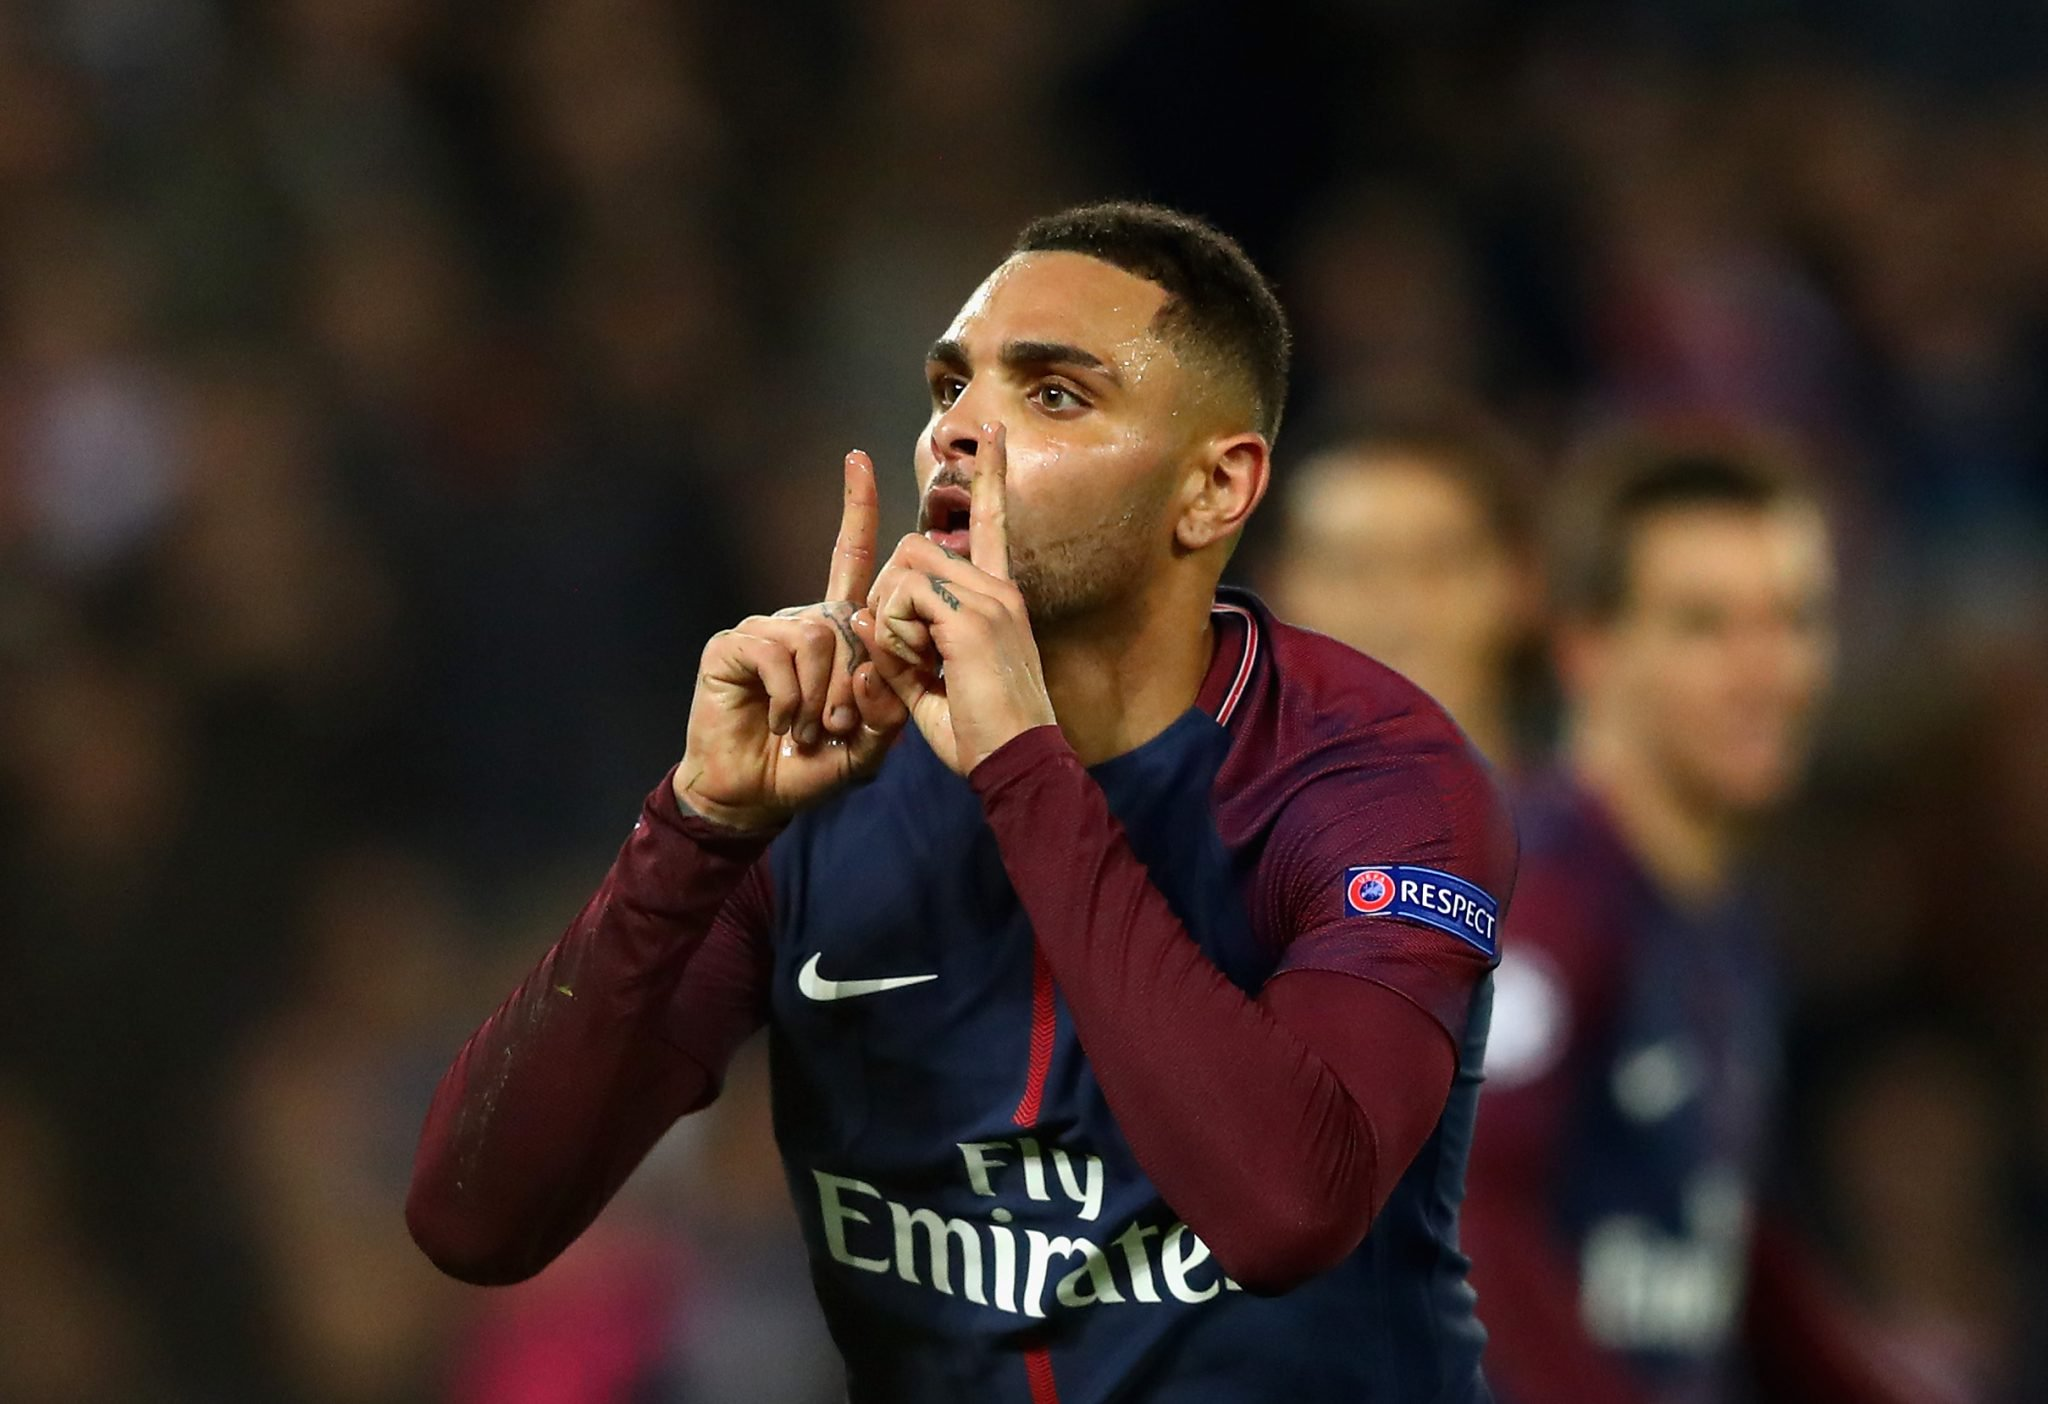 Layvin Kurzawa von Paris St. Germain. Foto: Getty Images